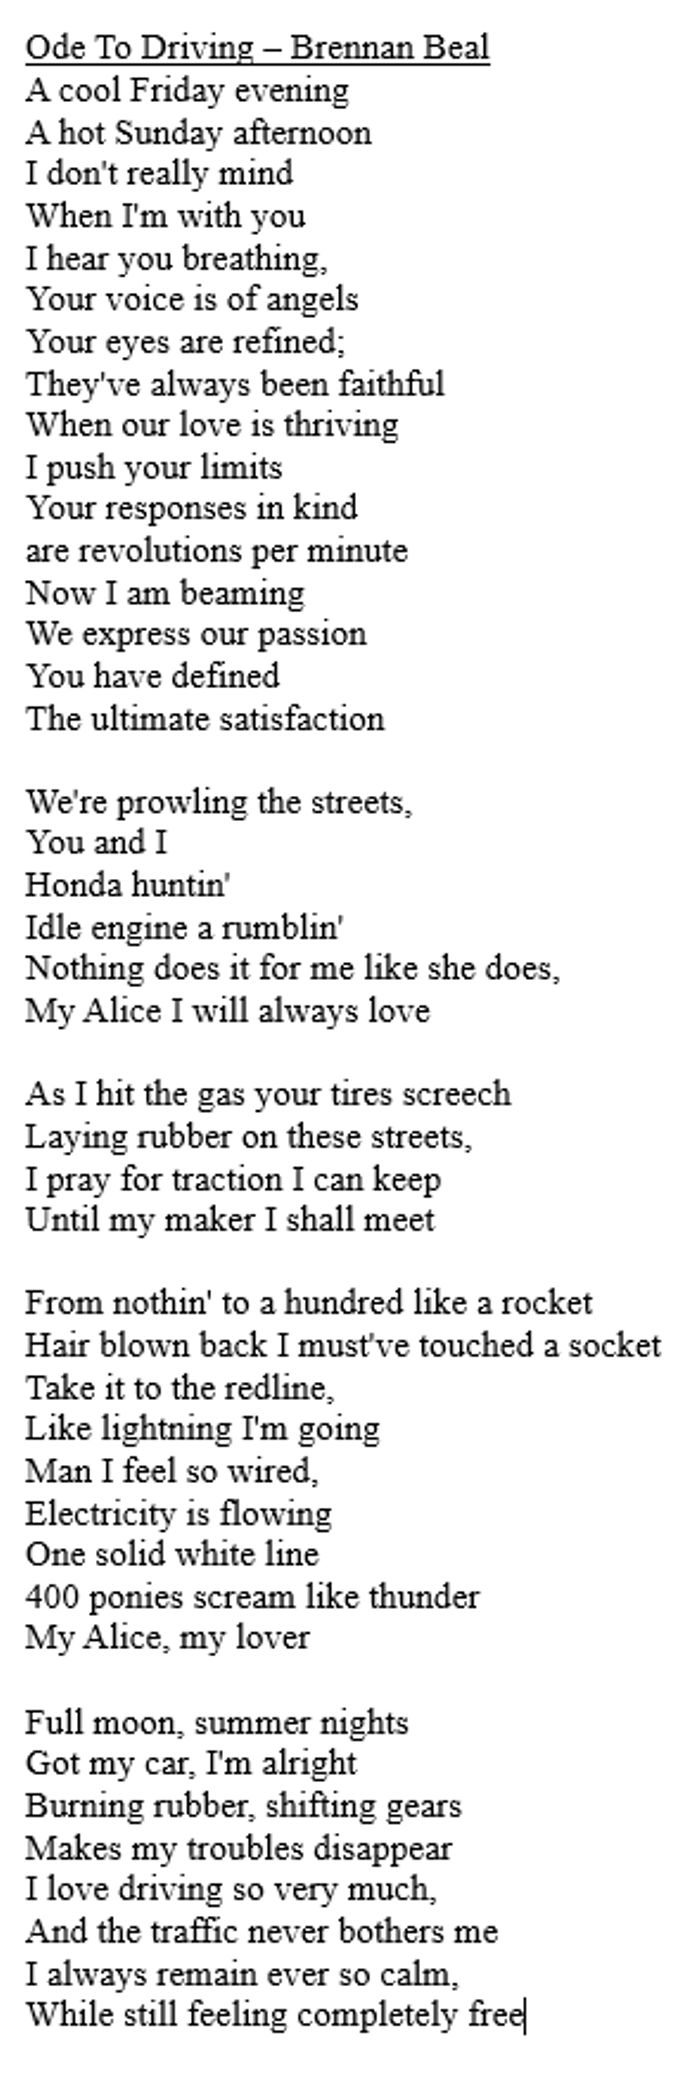 This Is A Poem I Wrote For My English Class That I Think You